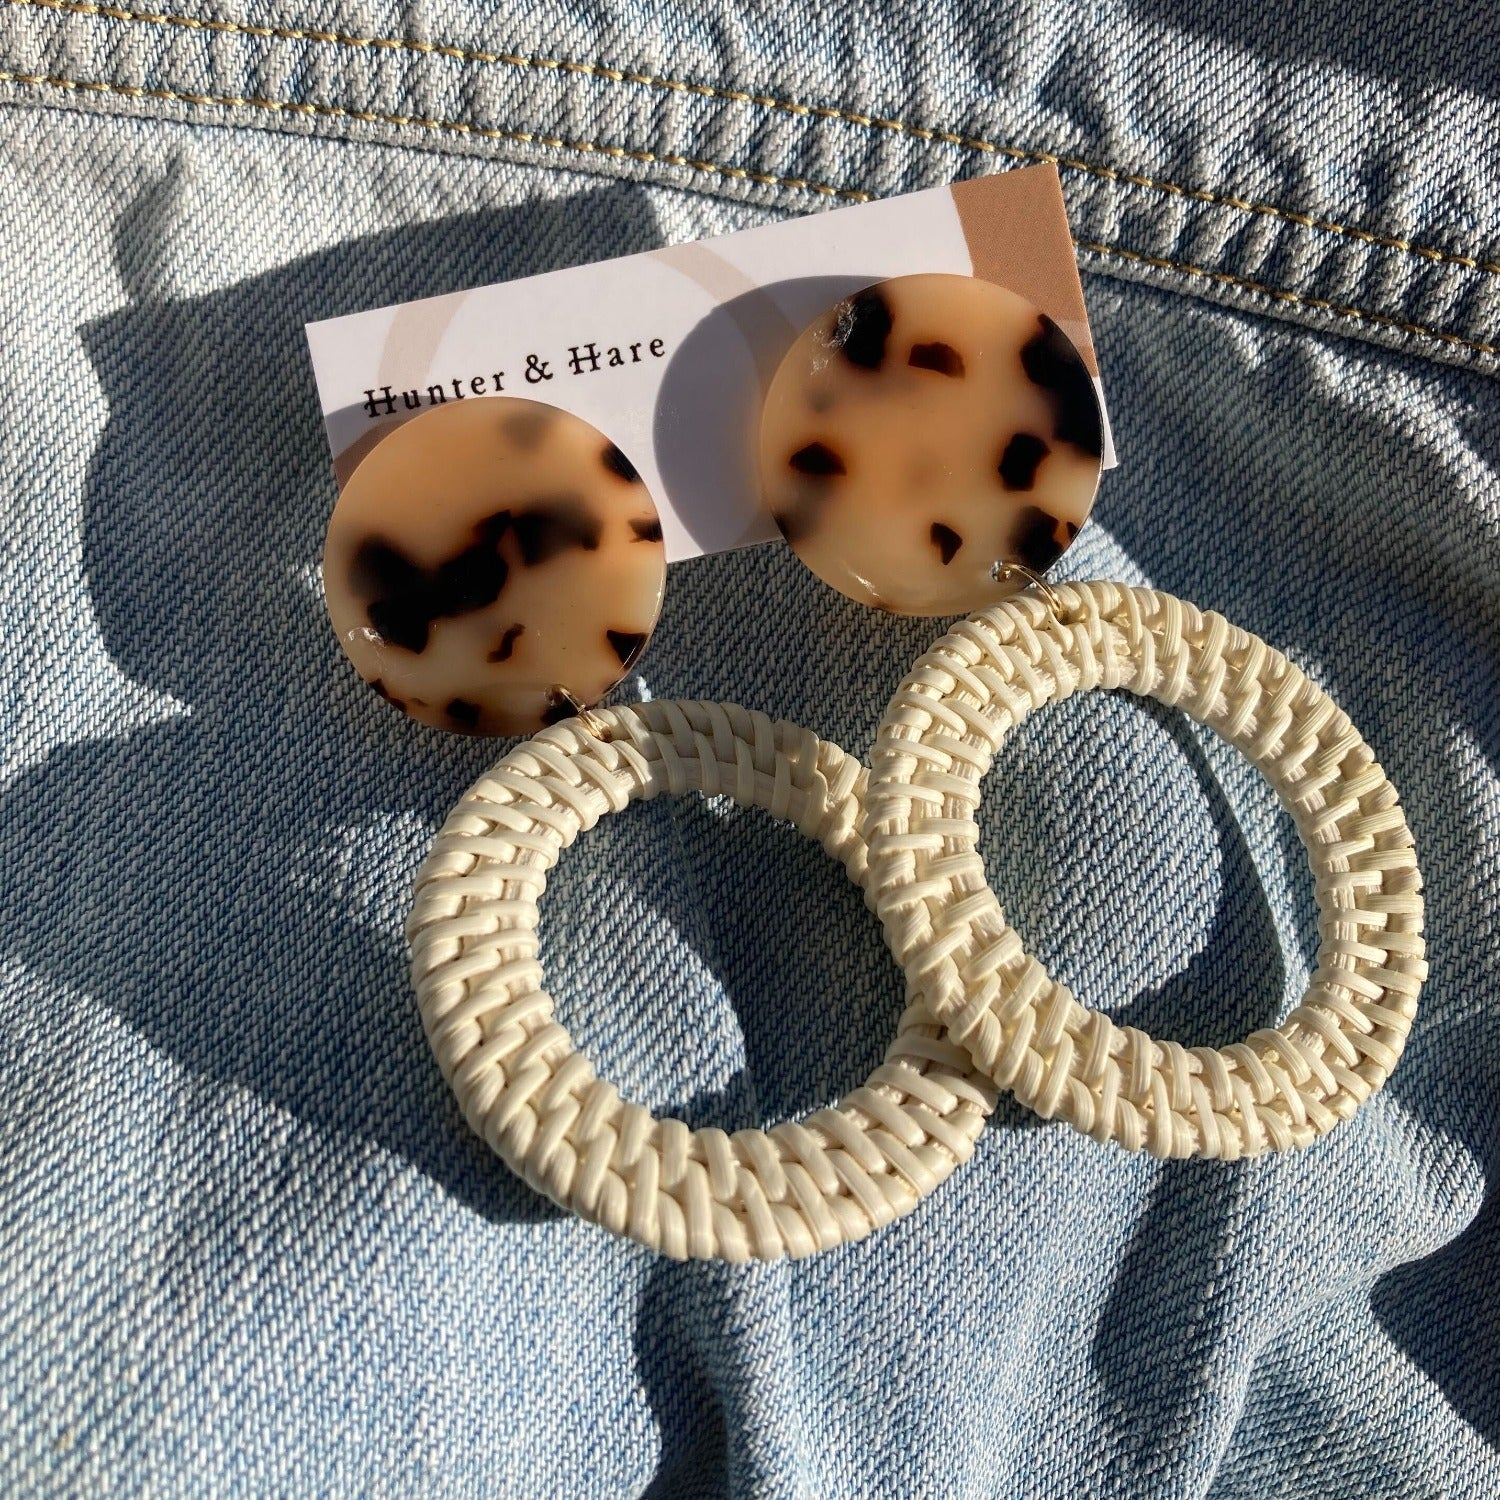 Hunter & Hare White Rattan Hoop Dangle Earrings